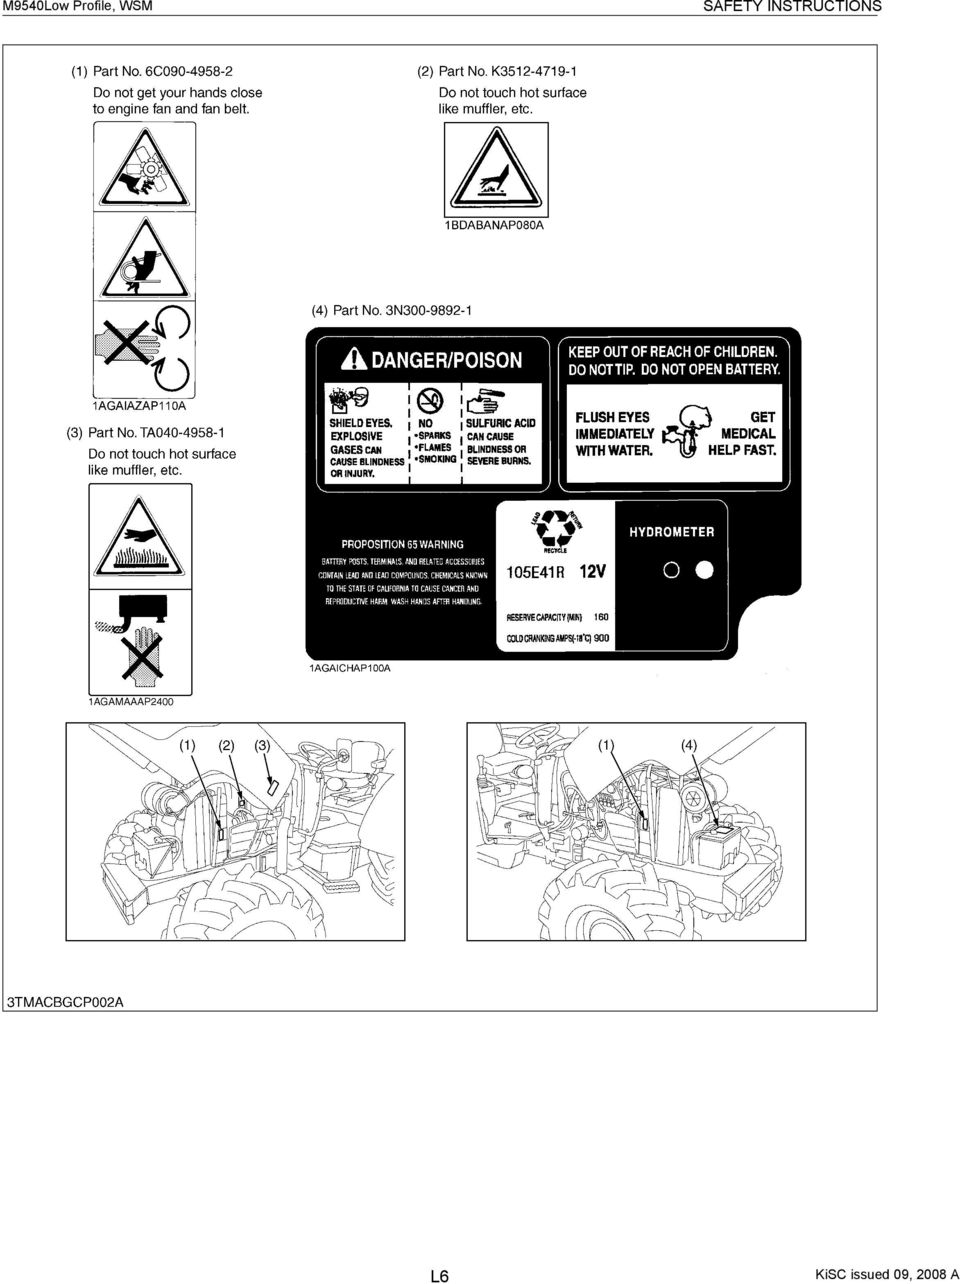 Workshop Manual Tractor M9540 Low Profile Supplement Pdf Hydraulic Clutch System Diagram Furthermore Fuel Injector Rail 8 Safety Instructions L6